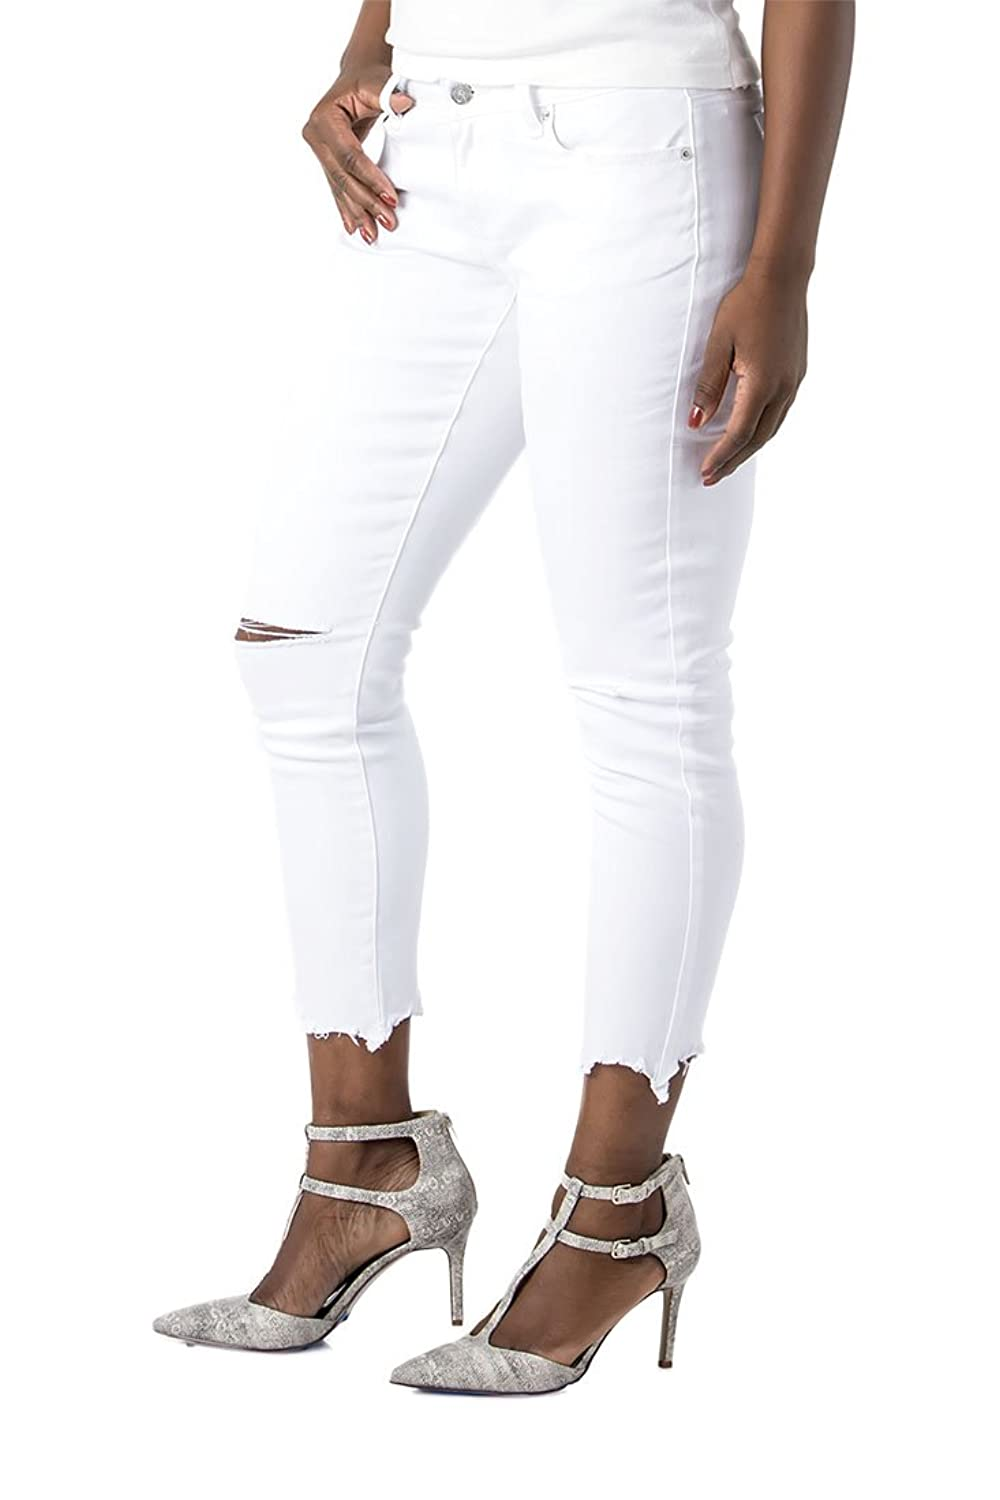 Poetic Justice Curvy Women's White Stretch Denim Raw Edge Destroyed Ankle Jeans